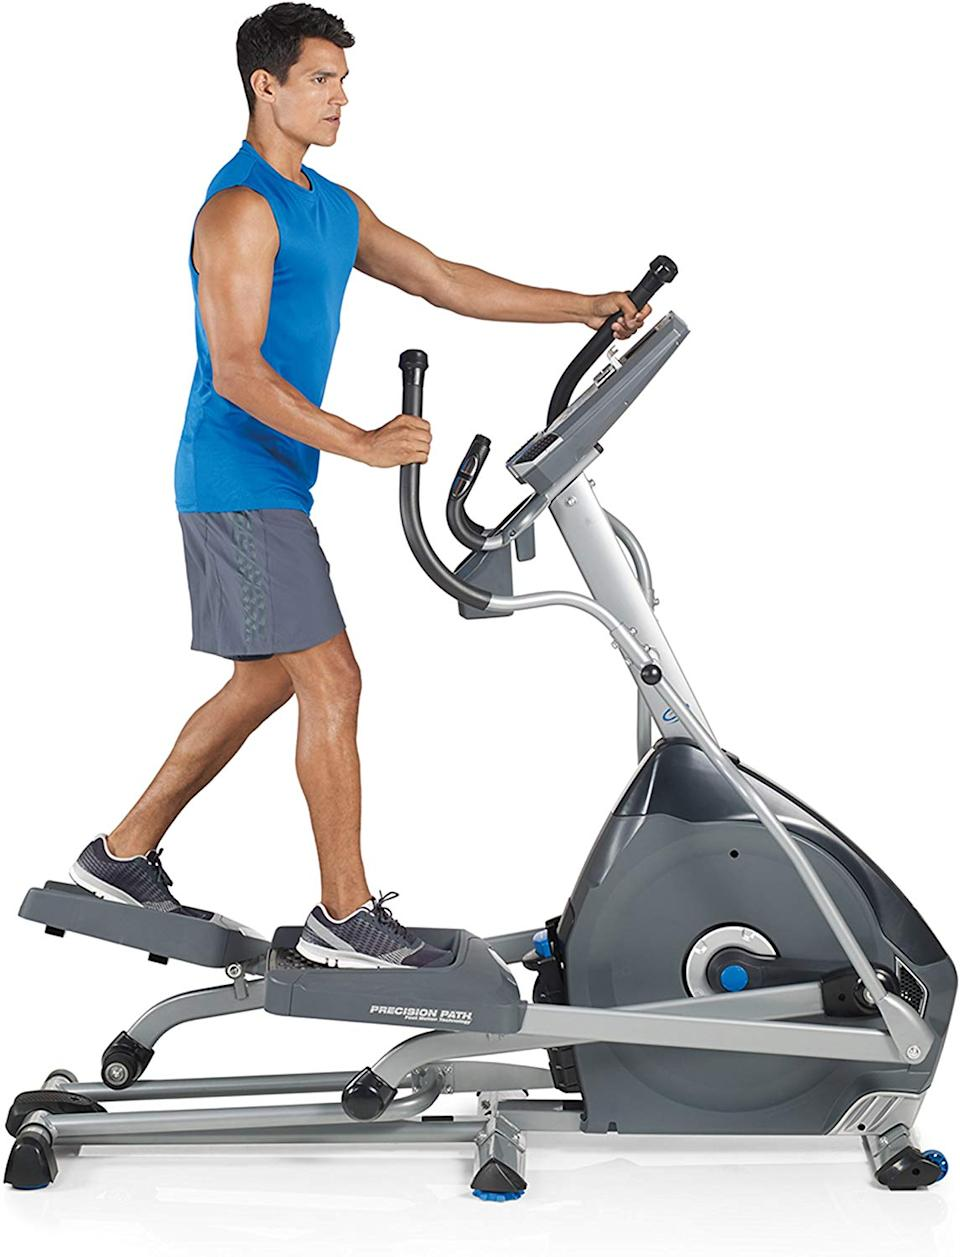 Nautilus E614 Elliptical Trainer. (Credit: Amazon)